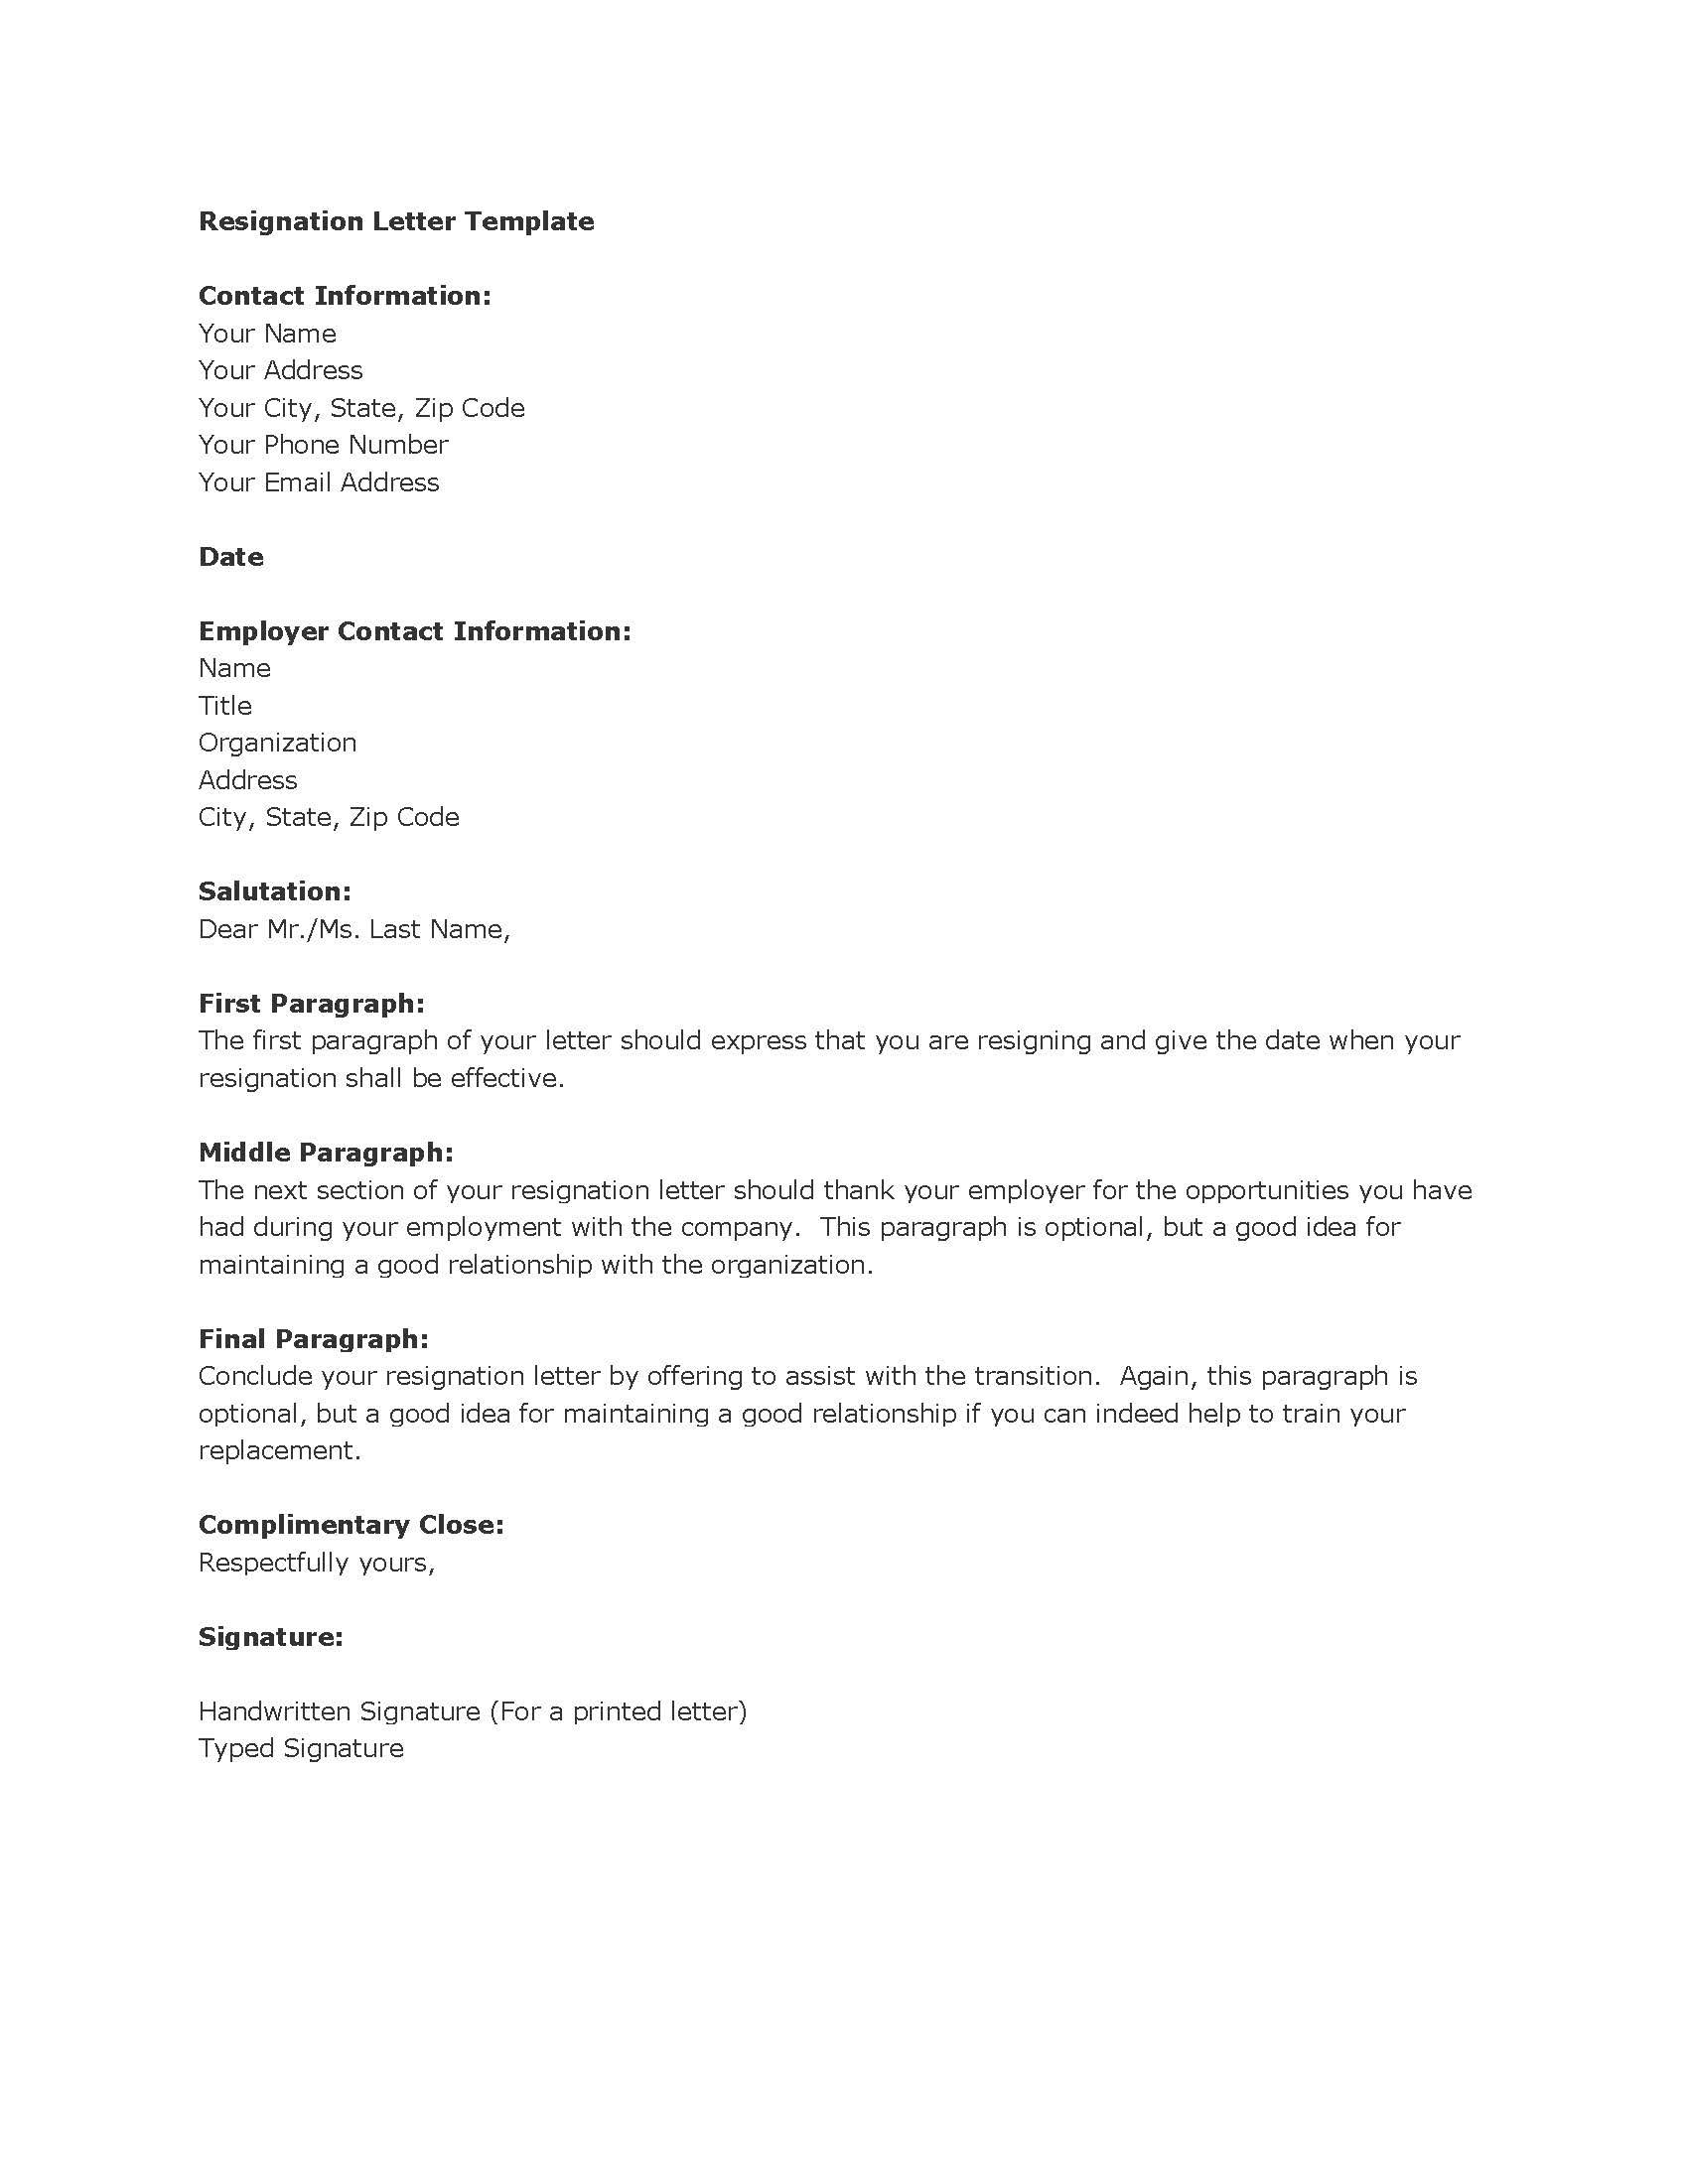 Job Resignation Letter Sample Template Seeabruzzoresignation